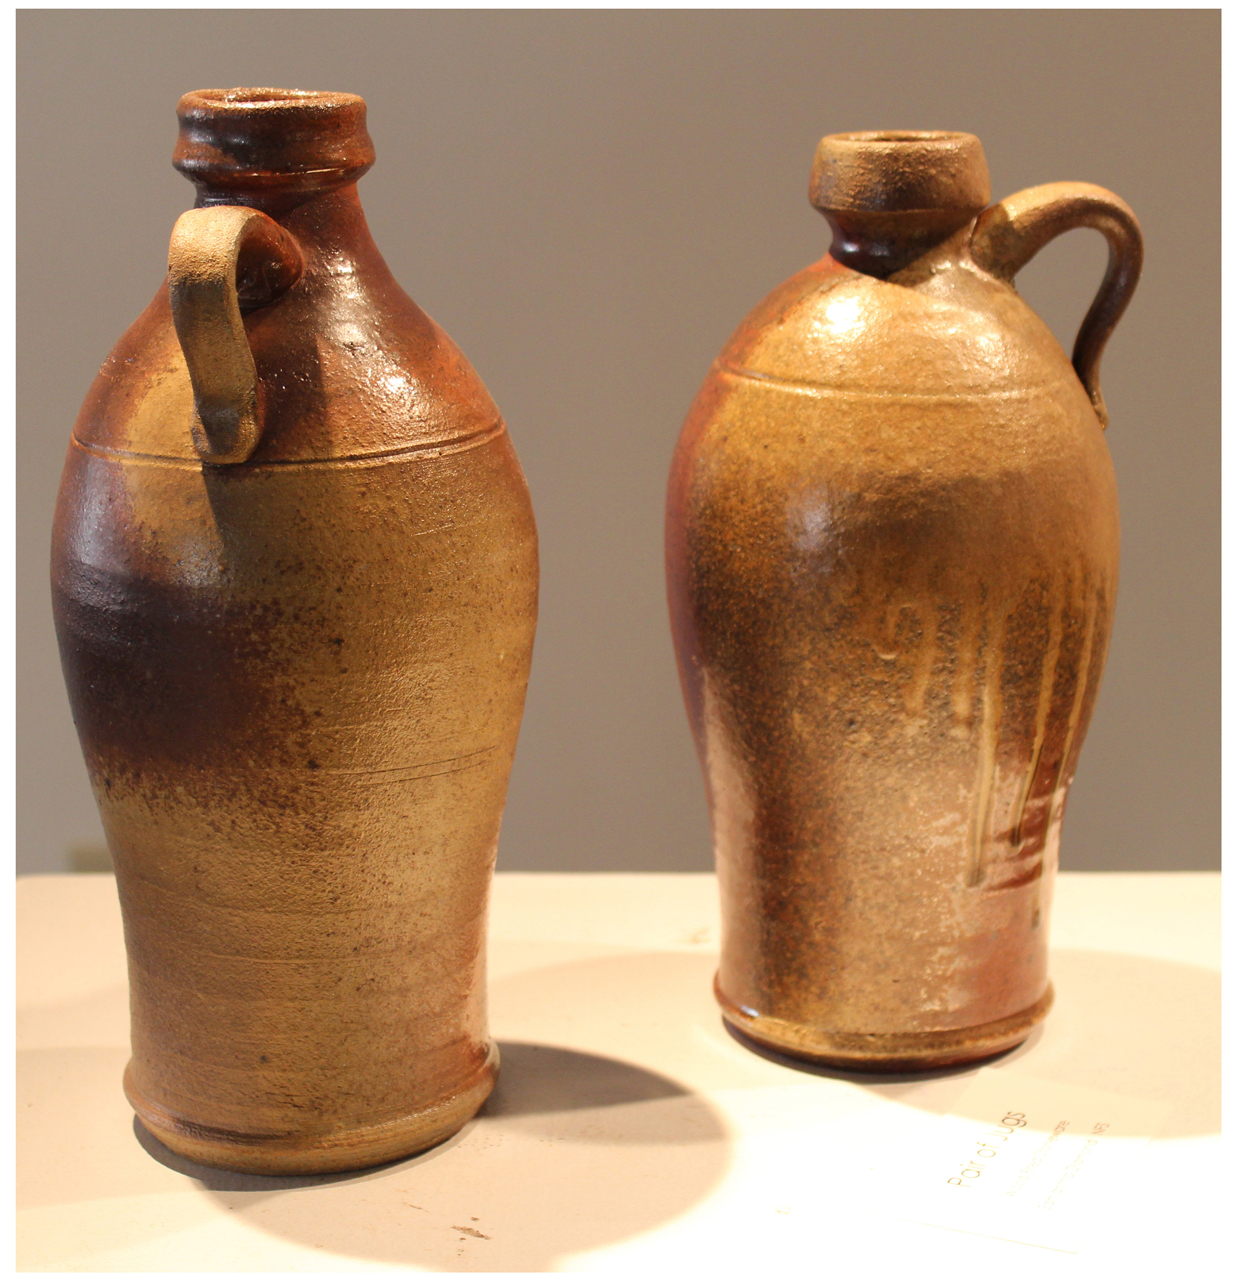 Wood fired Pair of Jugs